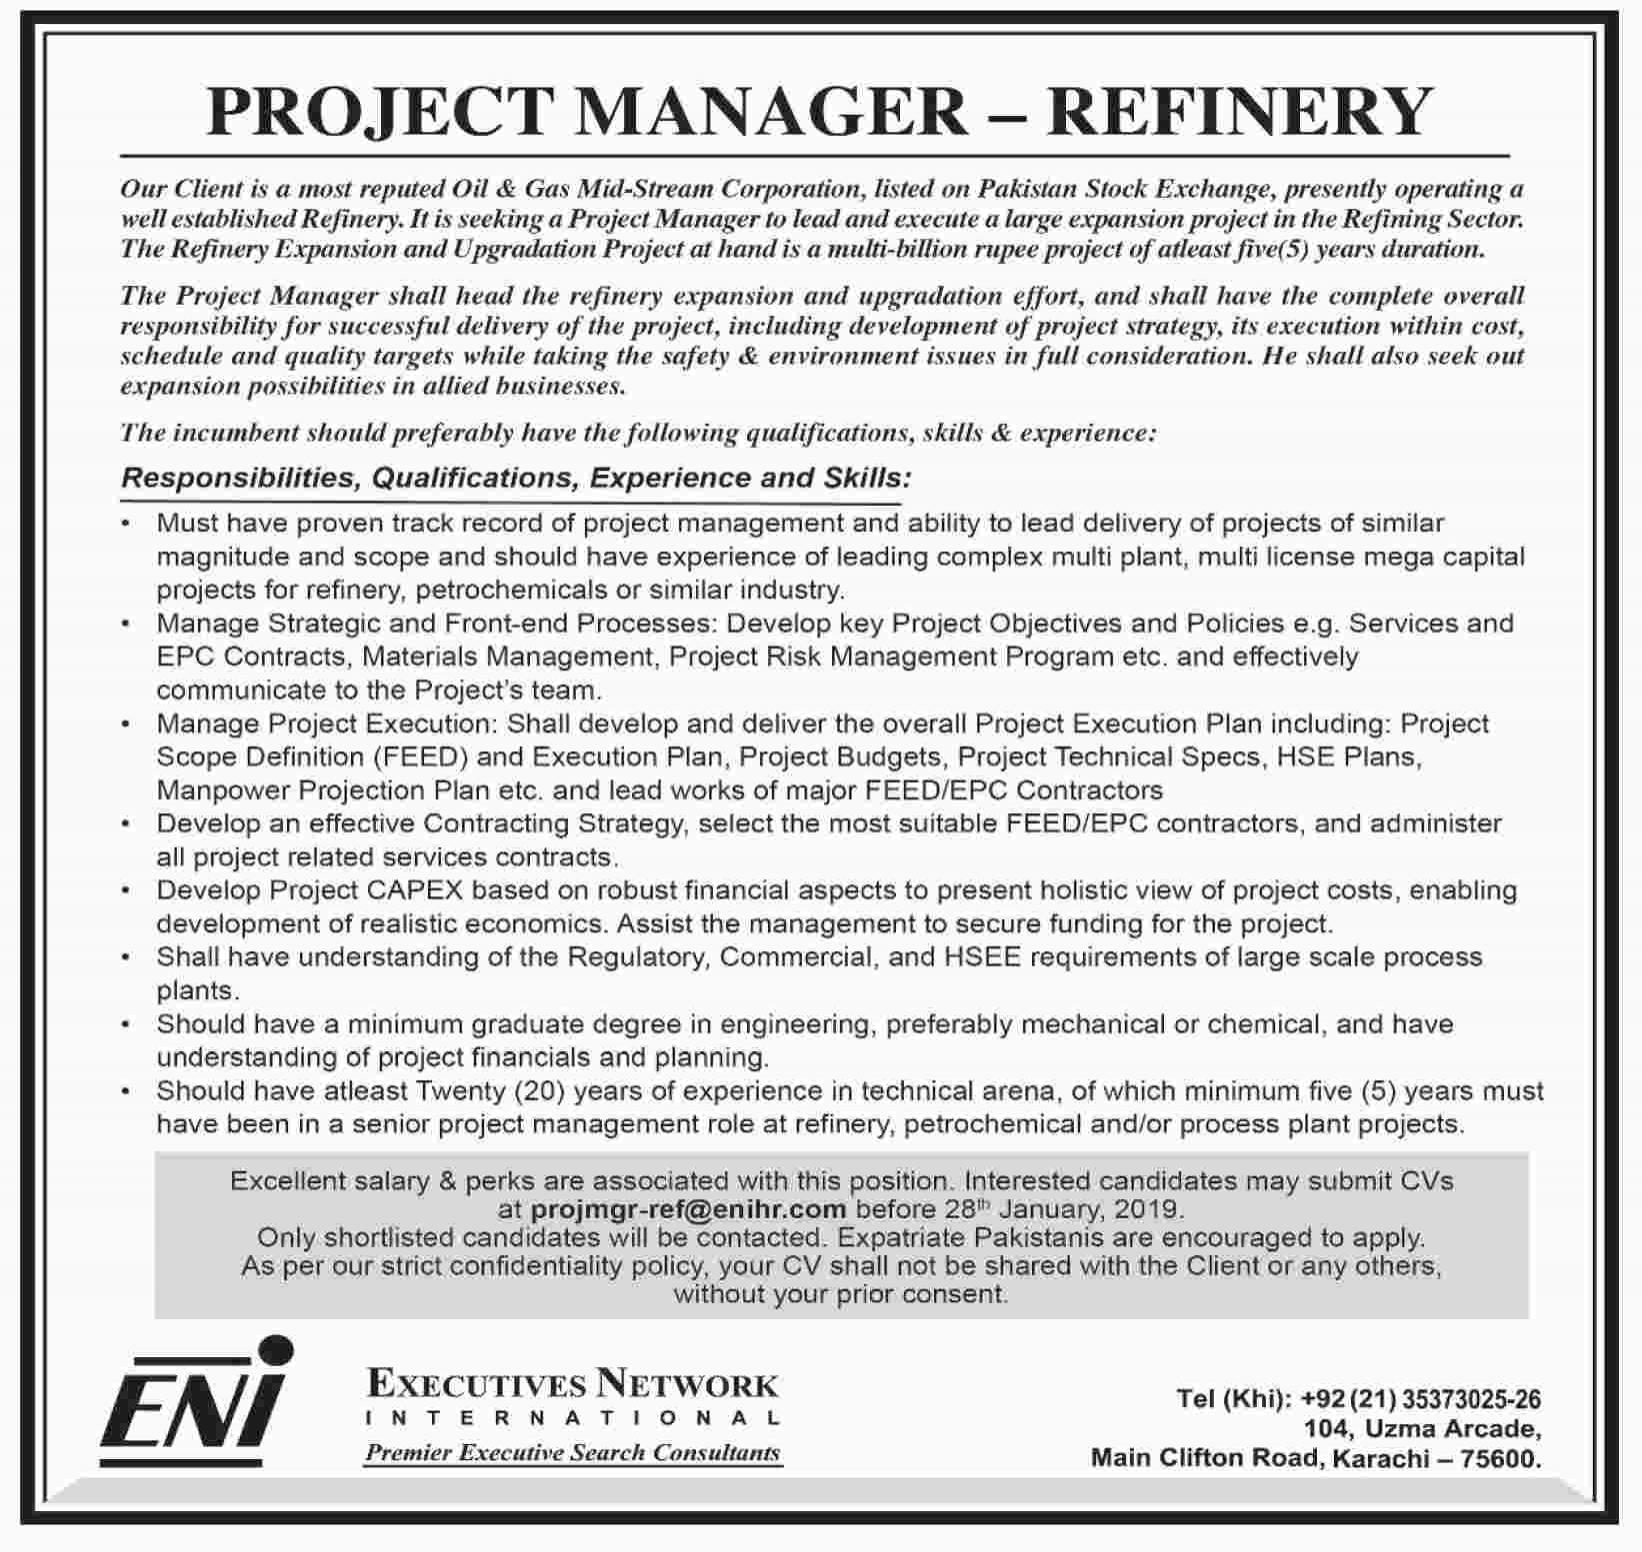 PROJECT MANAGER REFINERY JOBS OPPORTUNITY - Jobs